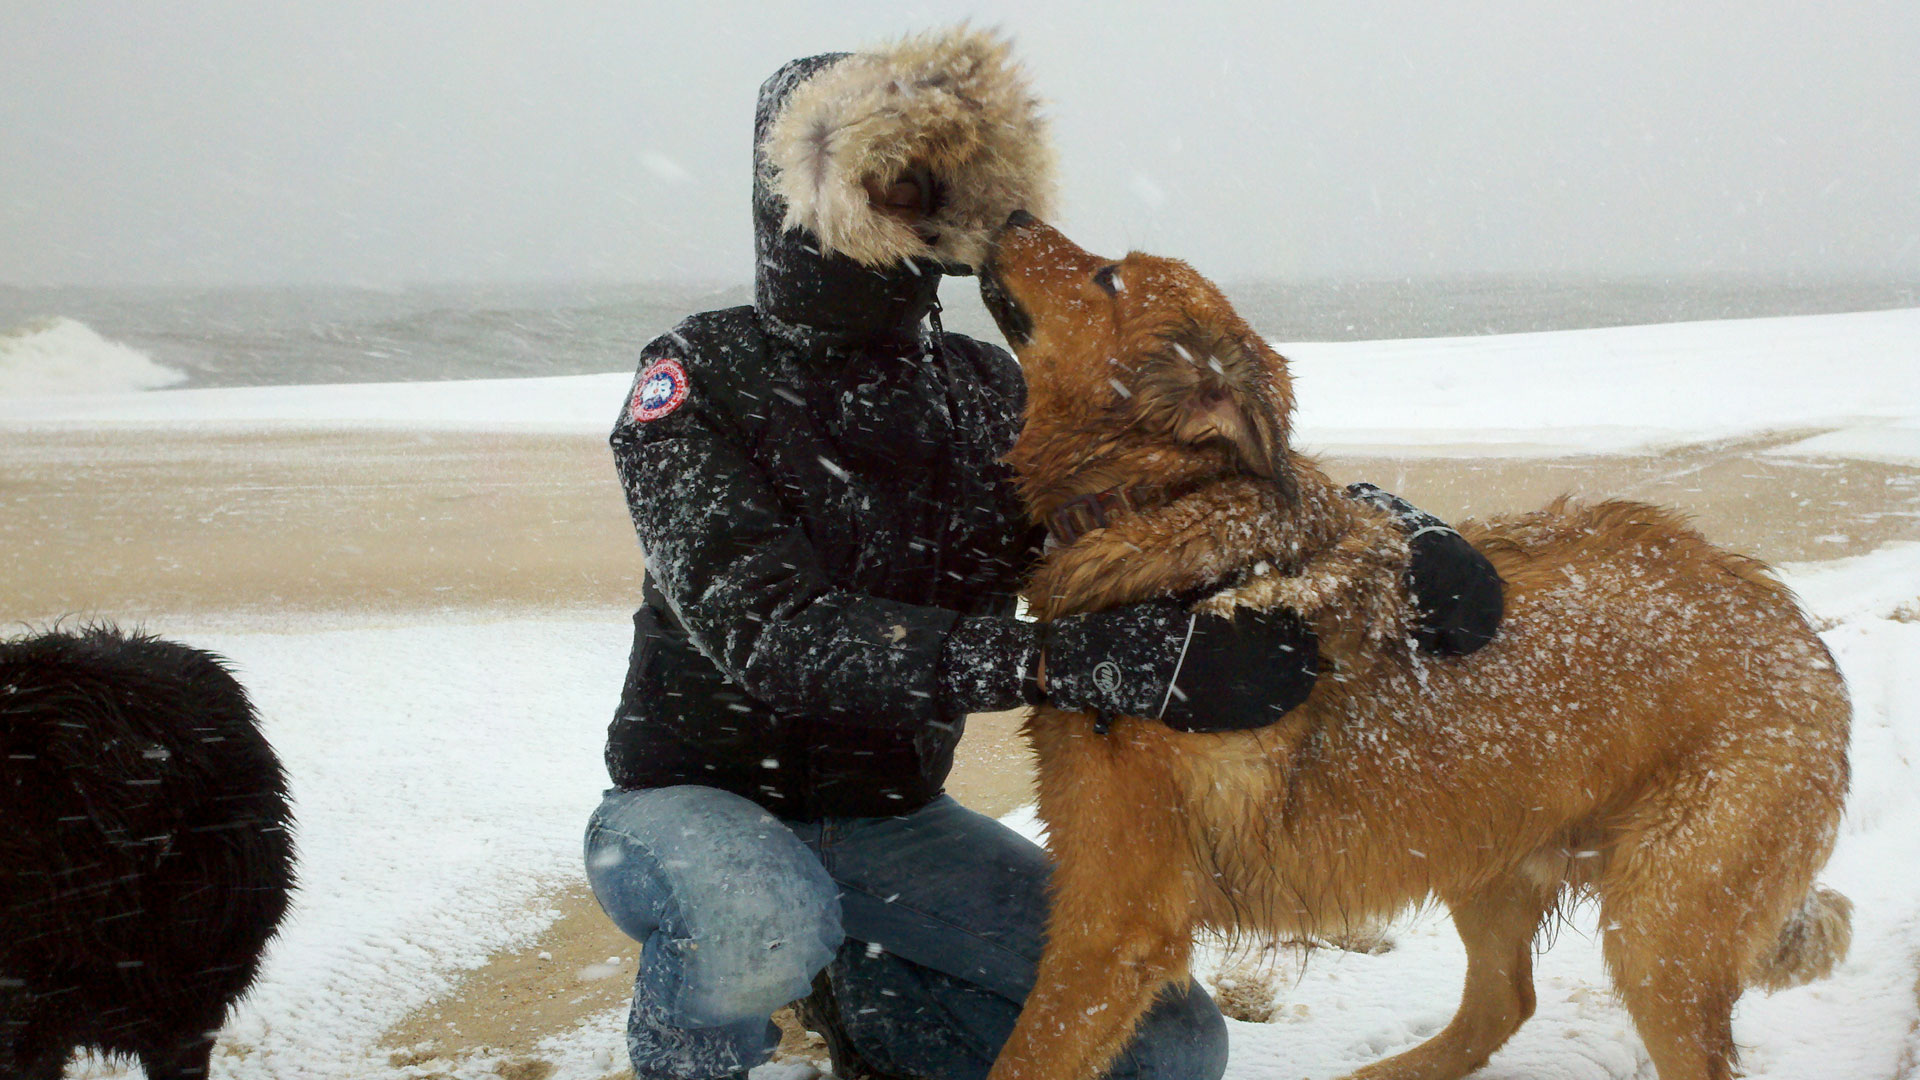 Me and breaker in snowstorm 11